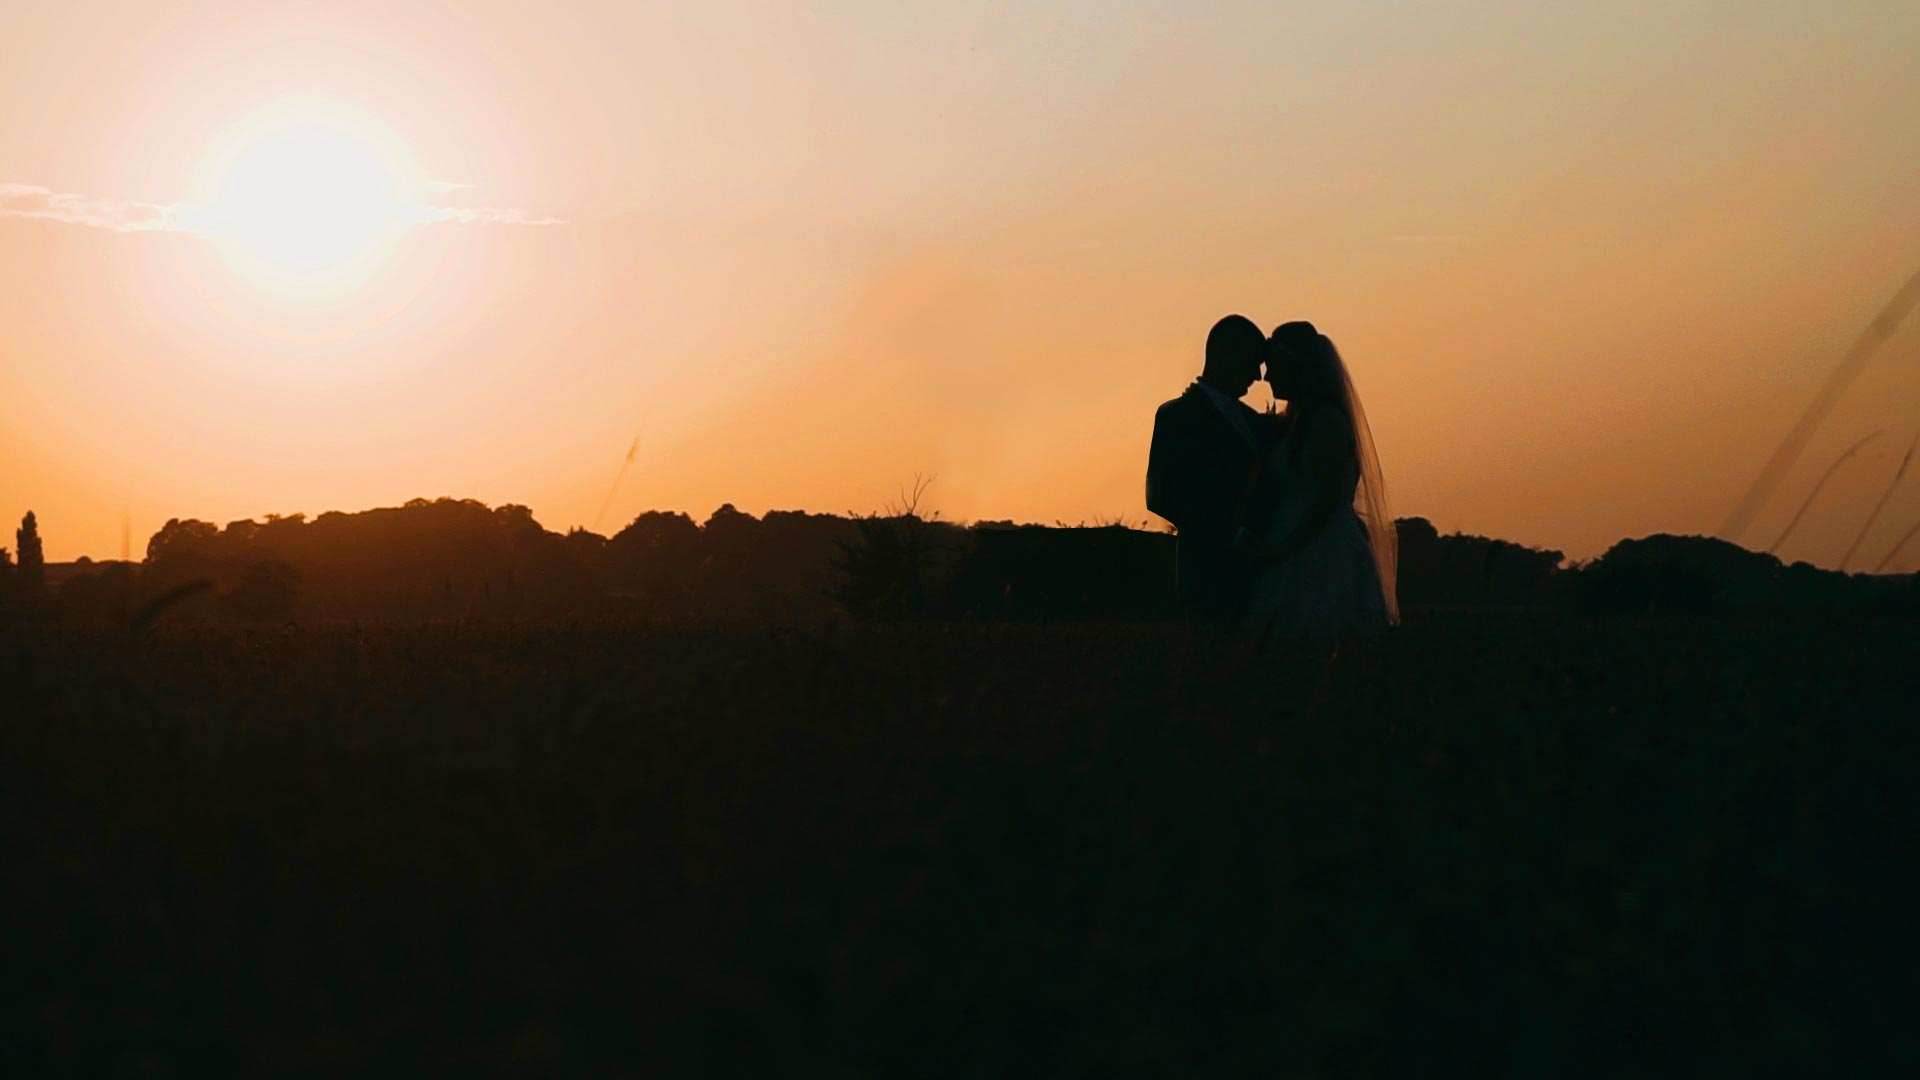 Bride-and-groom-at-sunset-cornfield-laceby-manor-golf-resort-wedding-videographer-lincolnshire-pocket-jacks-films-lincolnshire-videography.jpg